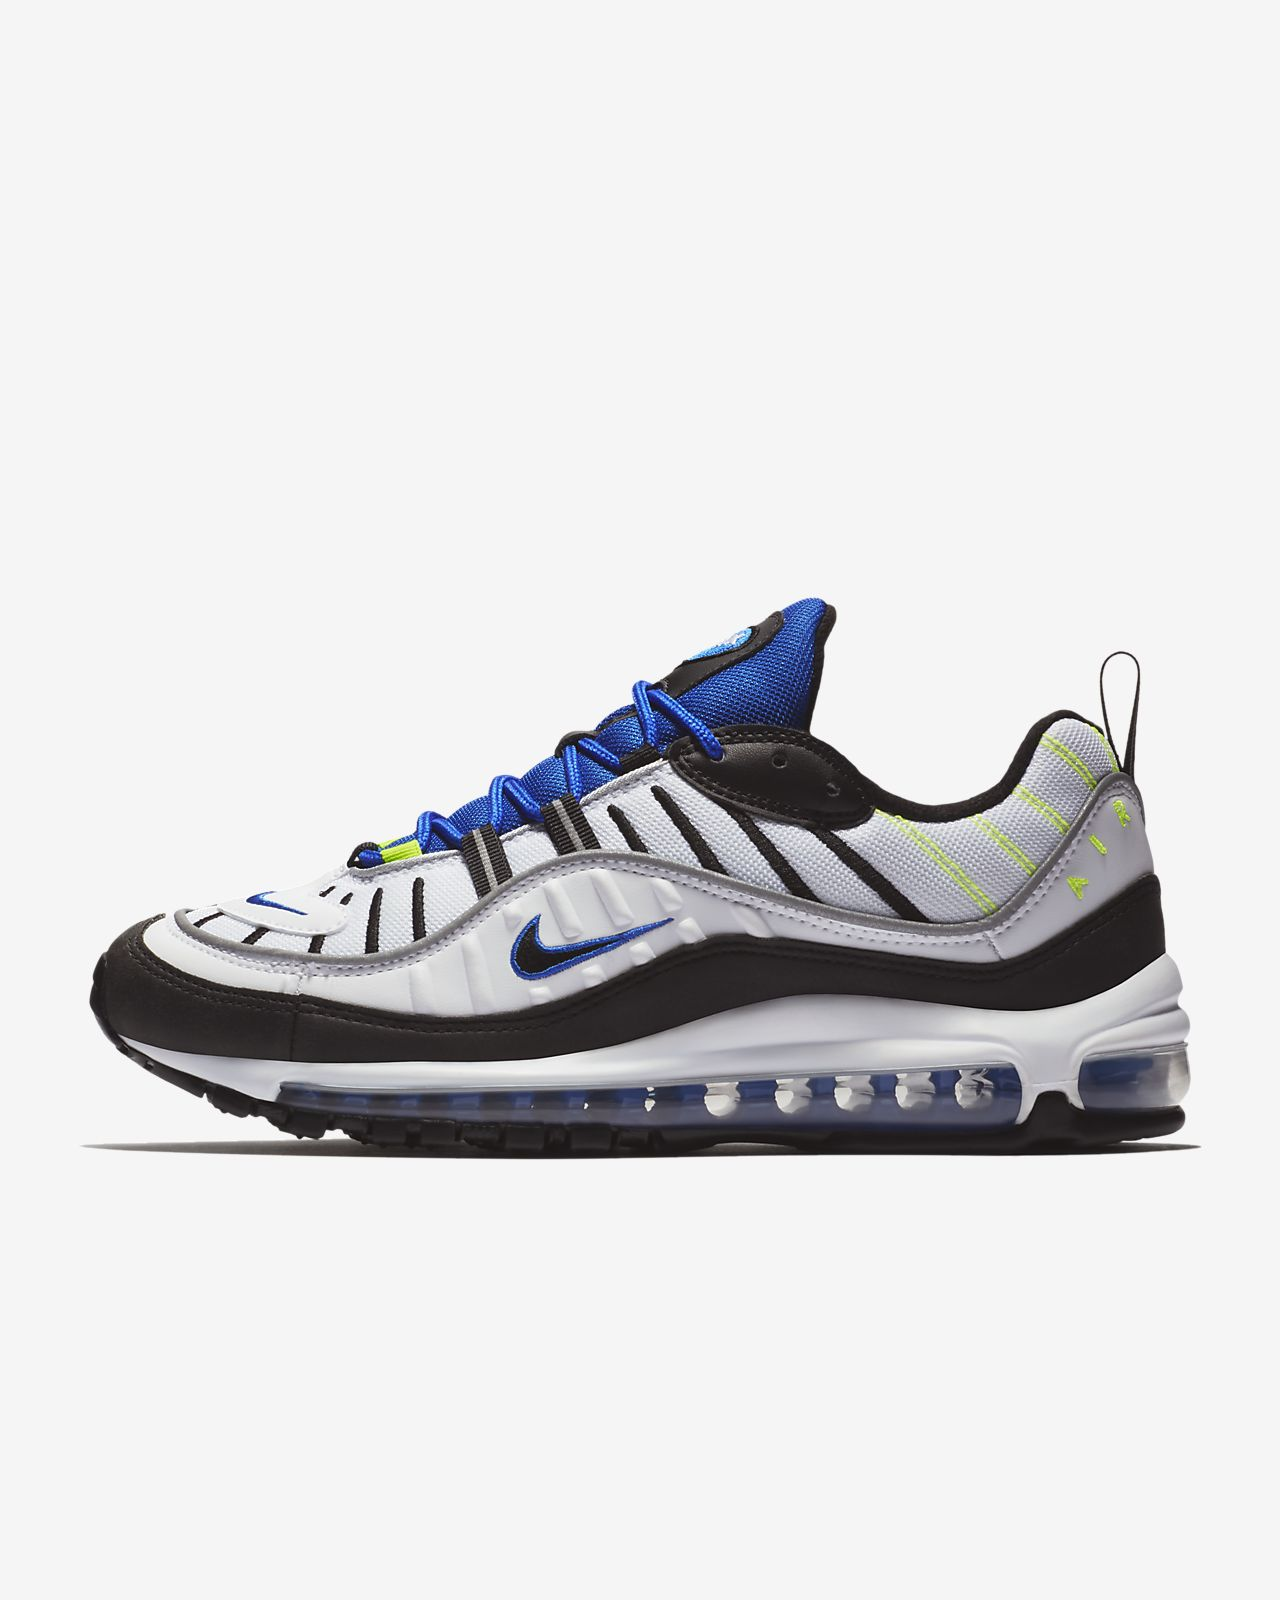 100% authentic d02e0 adc7c Chaussures Nike Air Max 98 rouges Fashion homme uBq2FwA4M